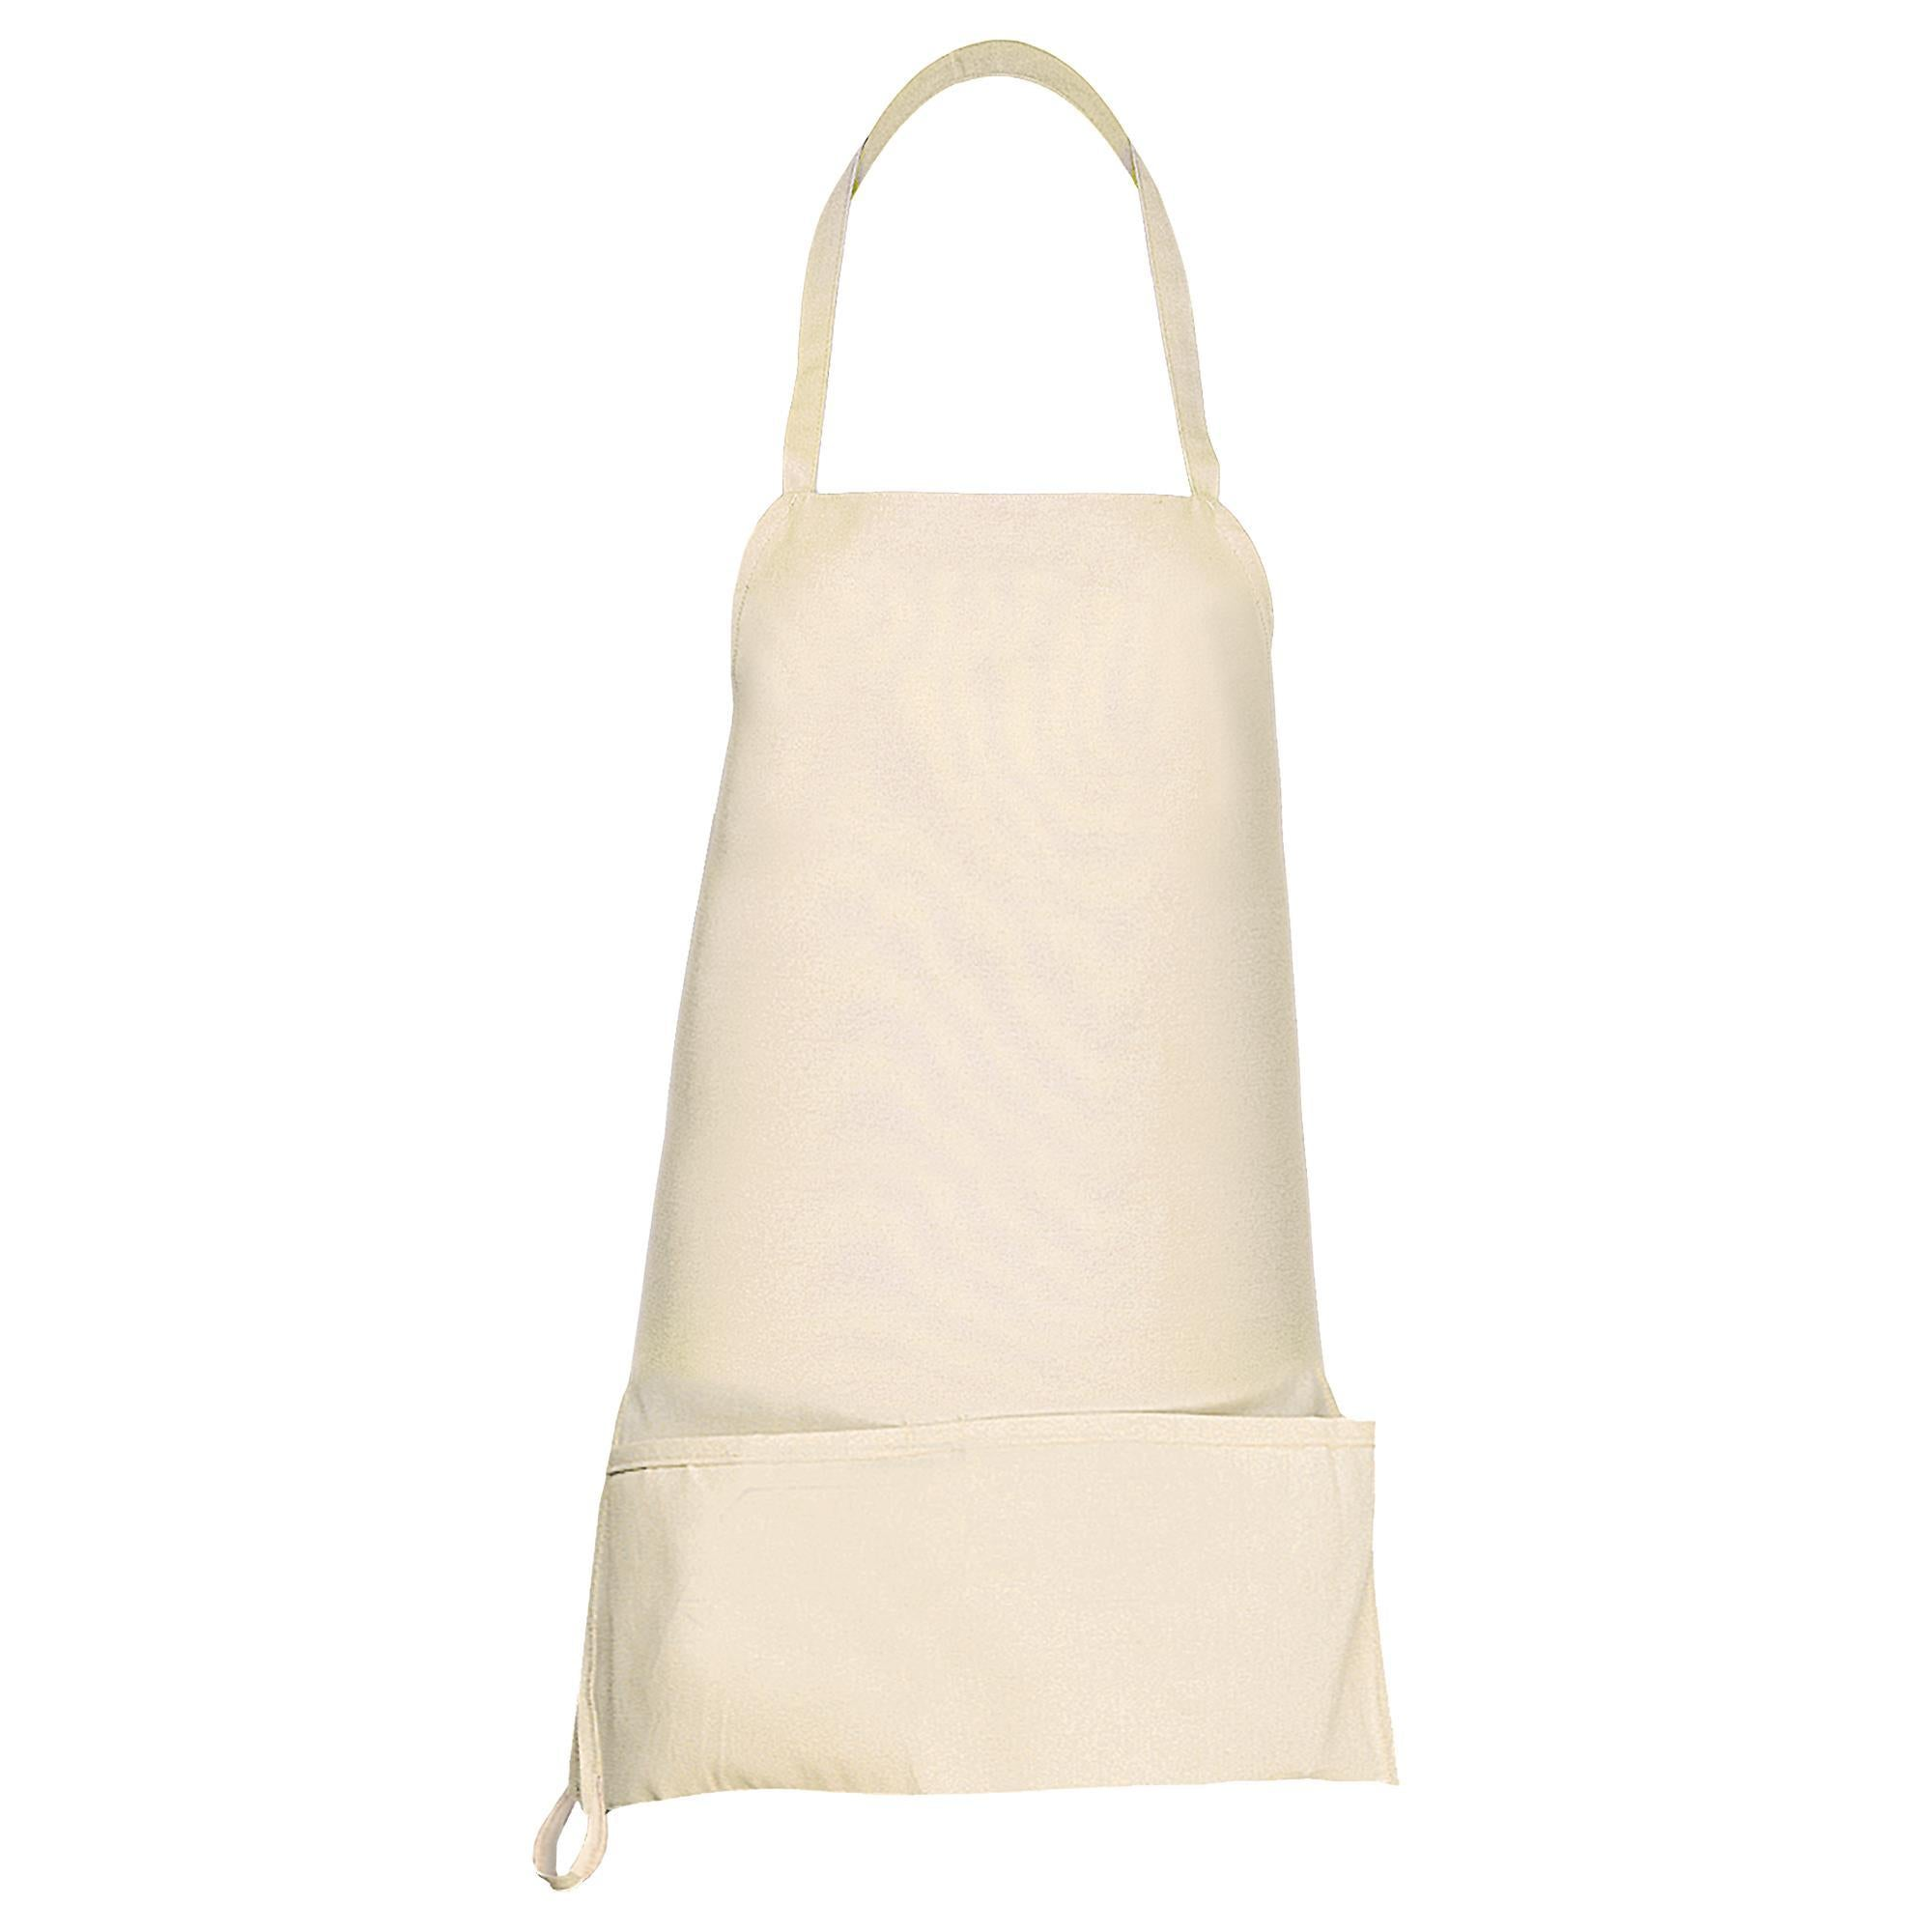 18066 F16 Duck Bib Apron 6pcs/carton